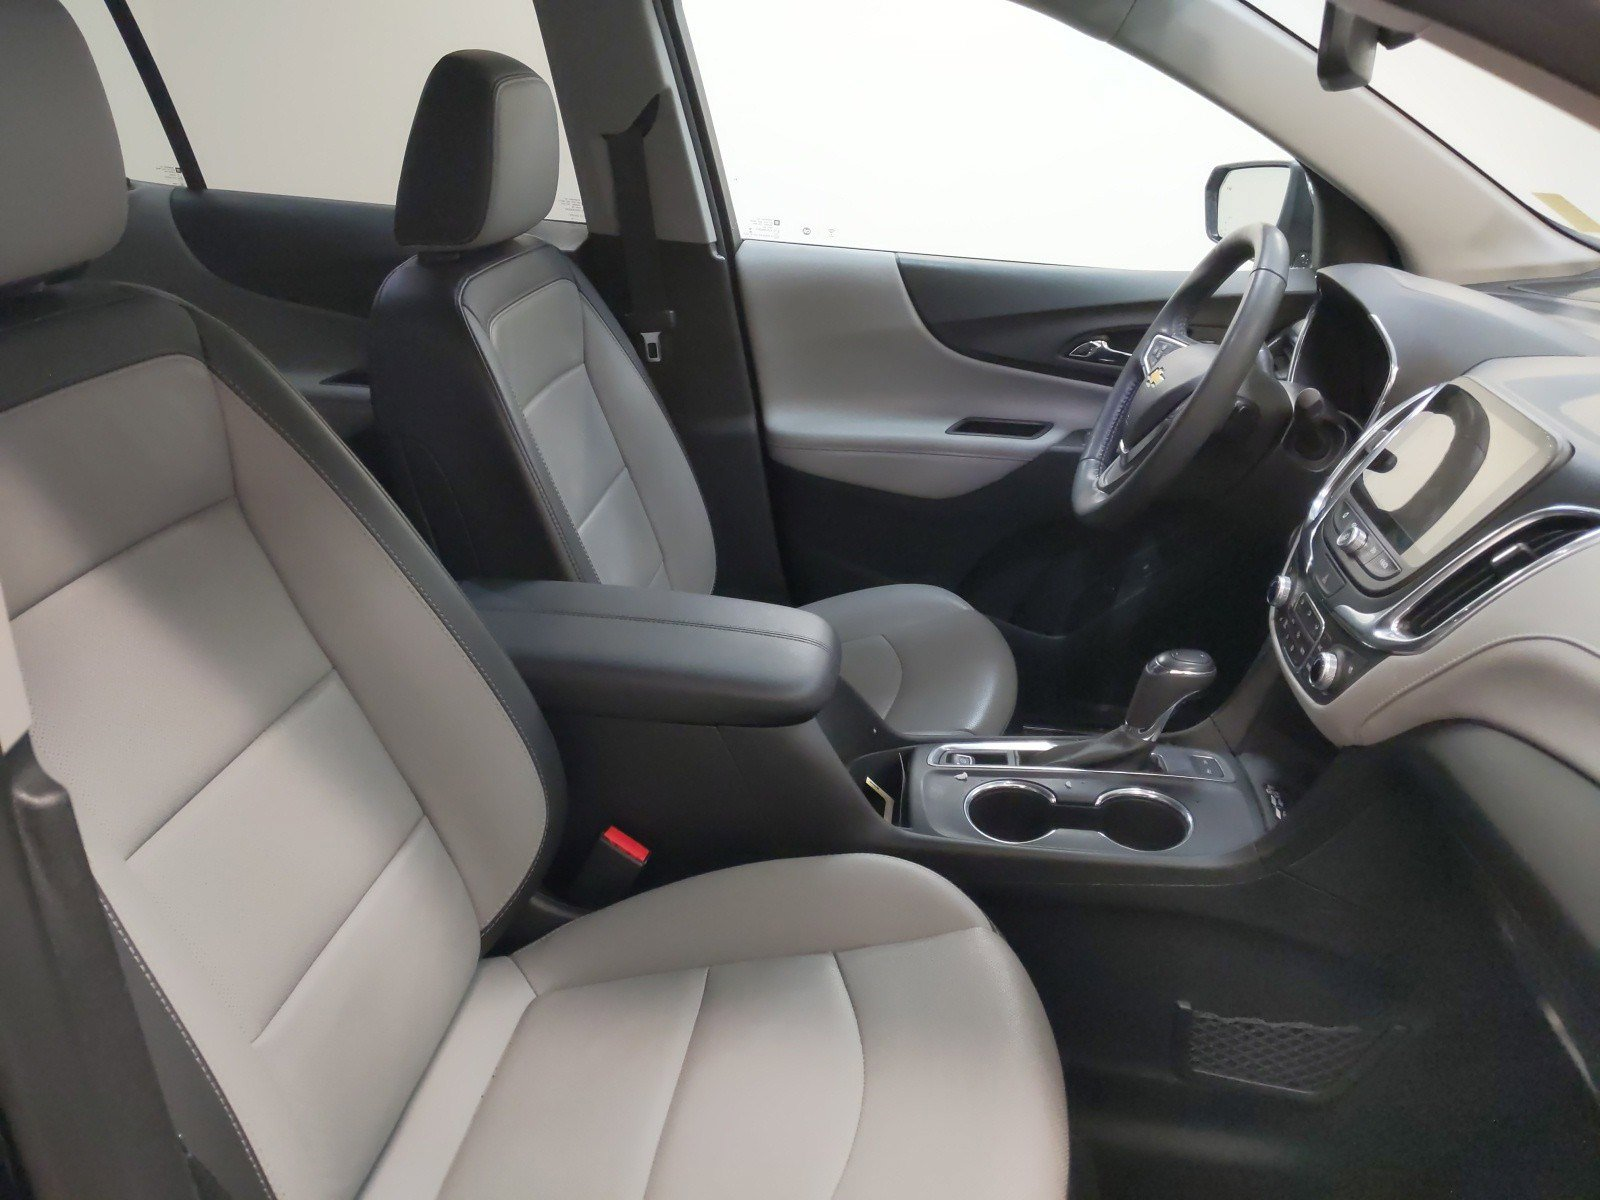 Used 2018 Chevrolet Equinox Premier 4D Sport Utility for sale in Grand Island NE